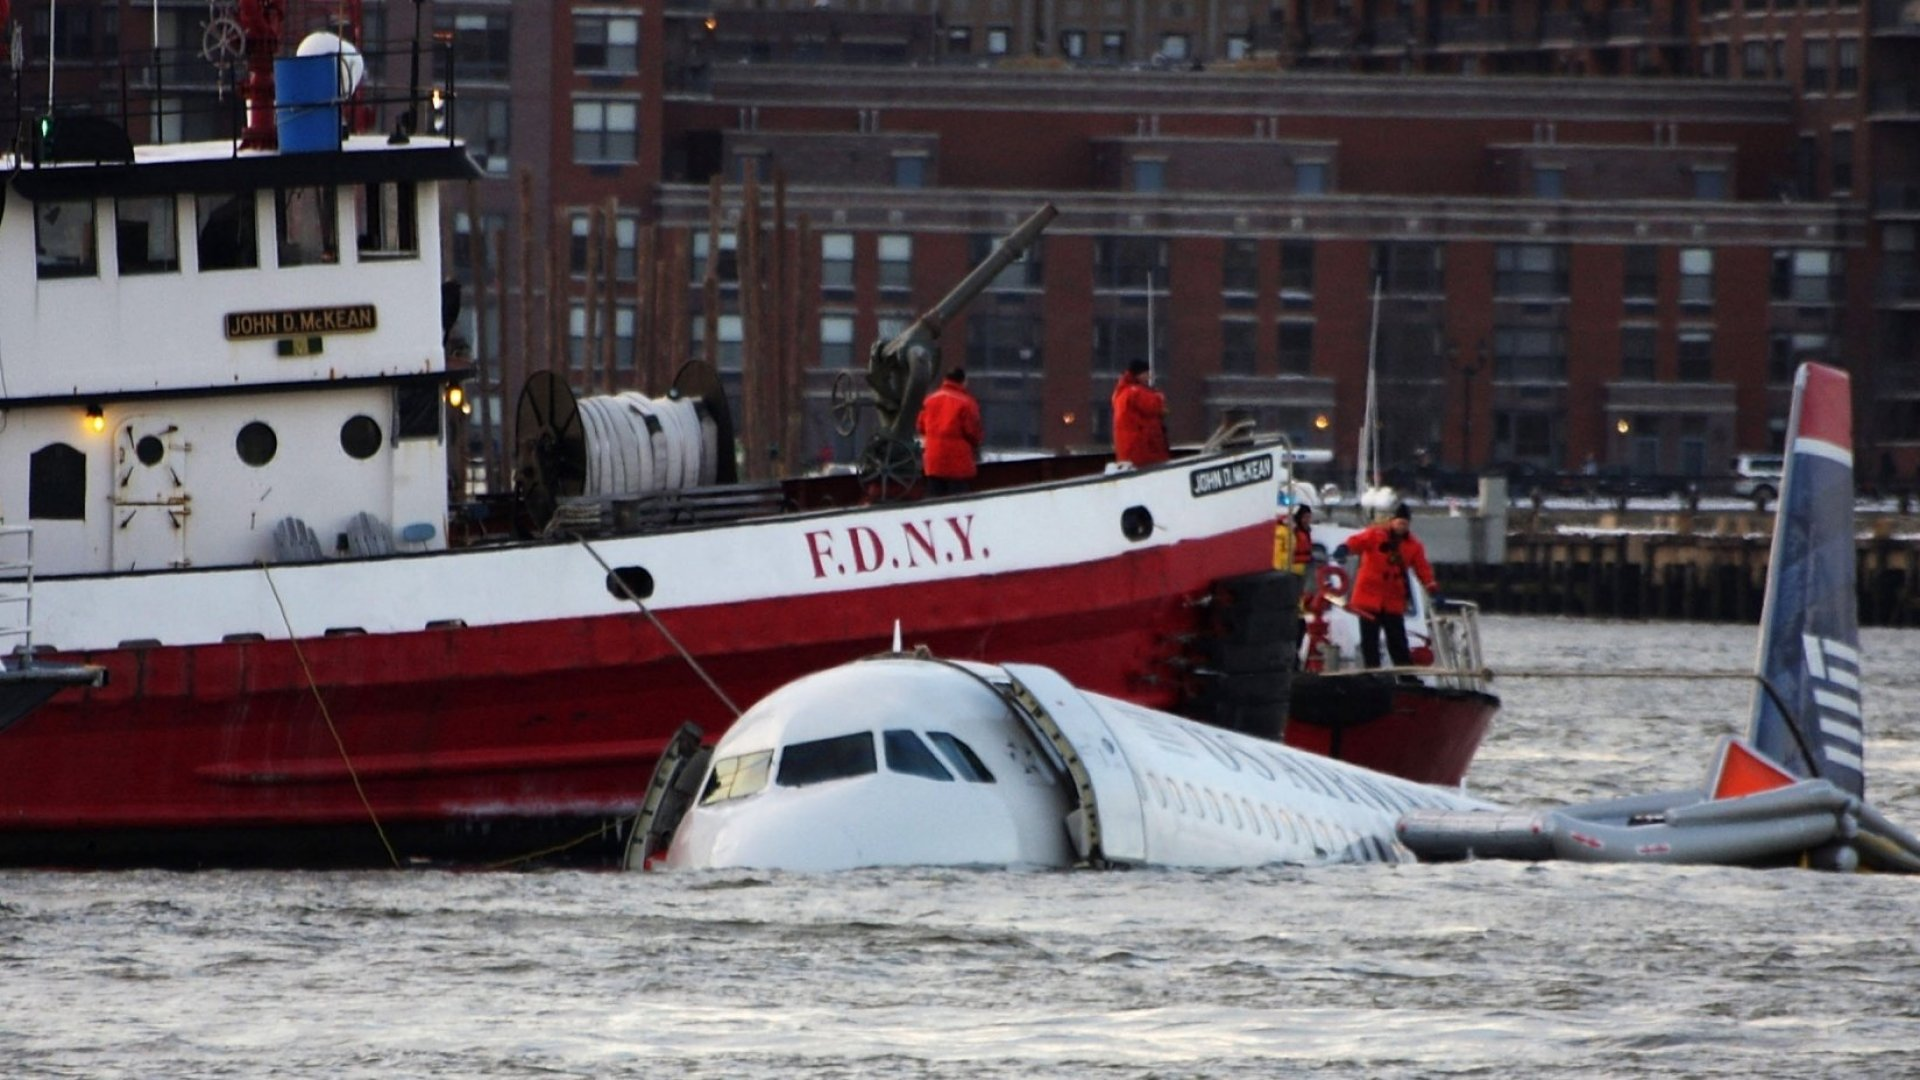 10-Year Anniversary of the 'Miracle on the Hudson': How a Pilot and His Crew Used 208 Seconds to Save Over 100 Lives